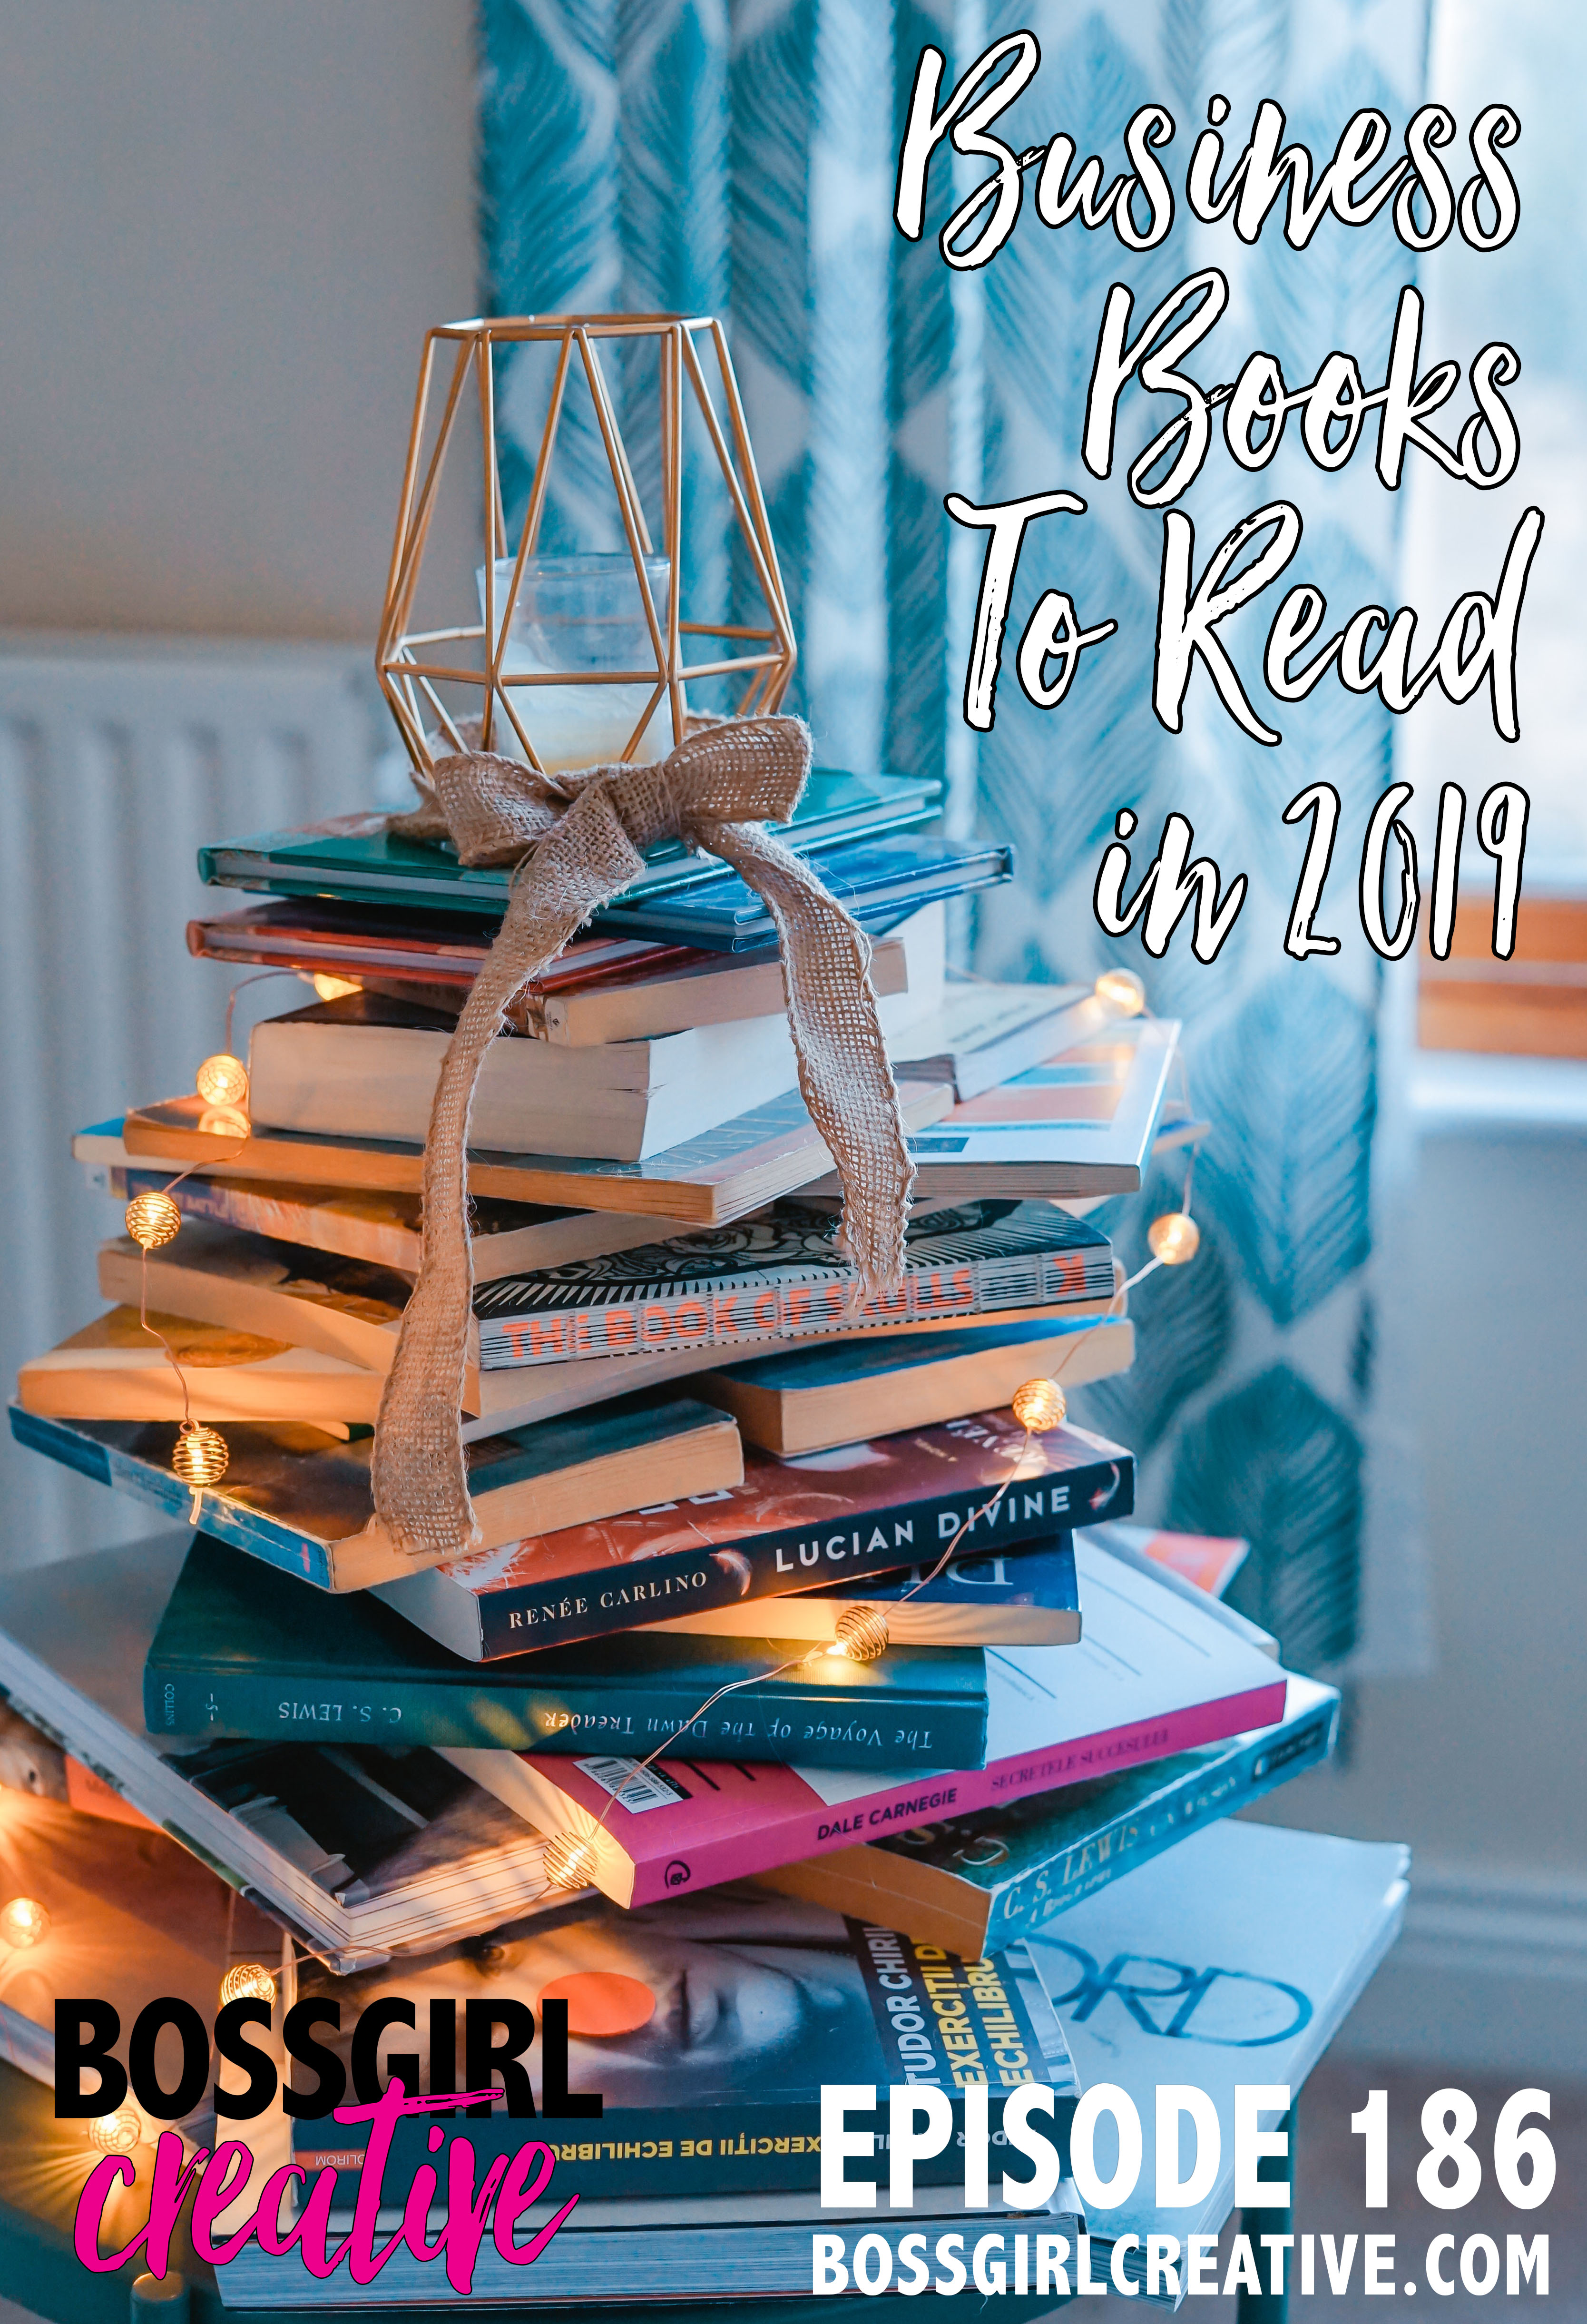 Looking to grow in your business and blog in 2019? Check out the books I've got on my list and some others my BGC Community is recommending.